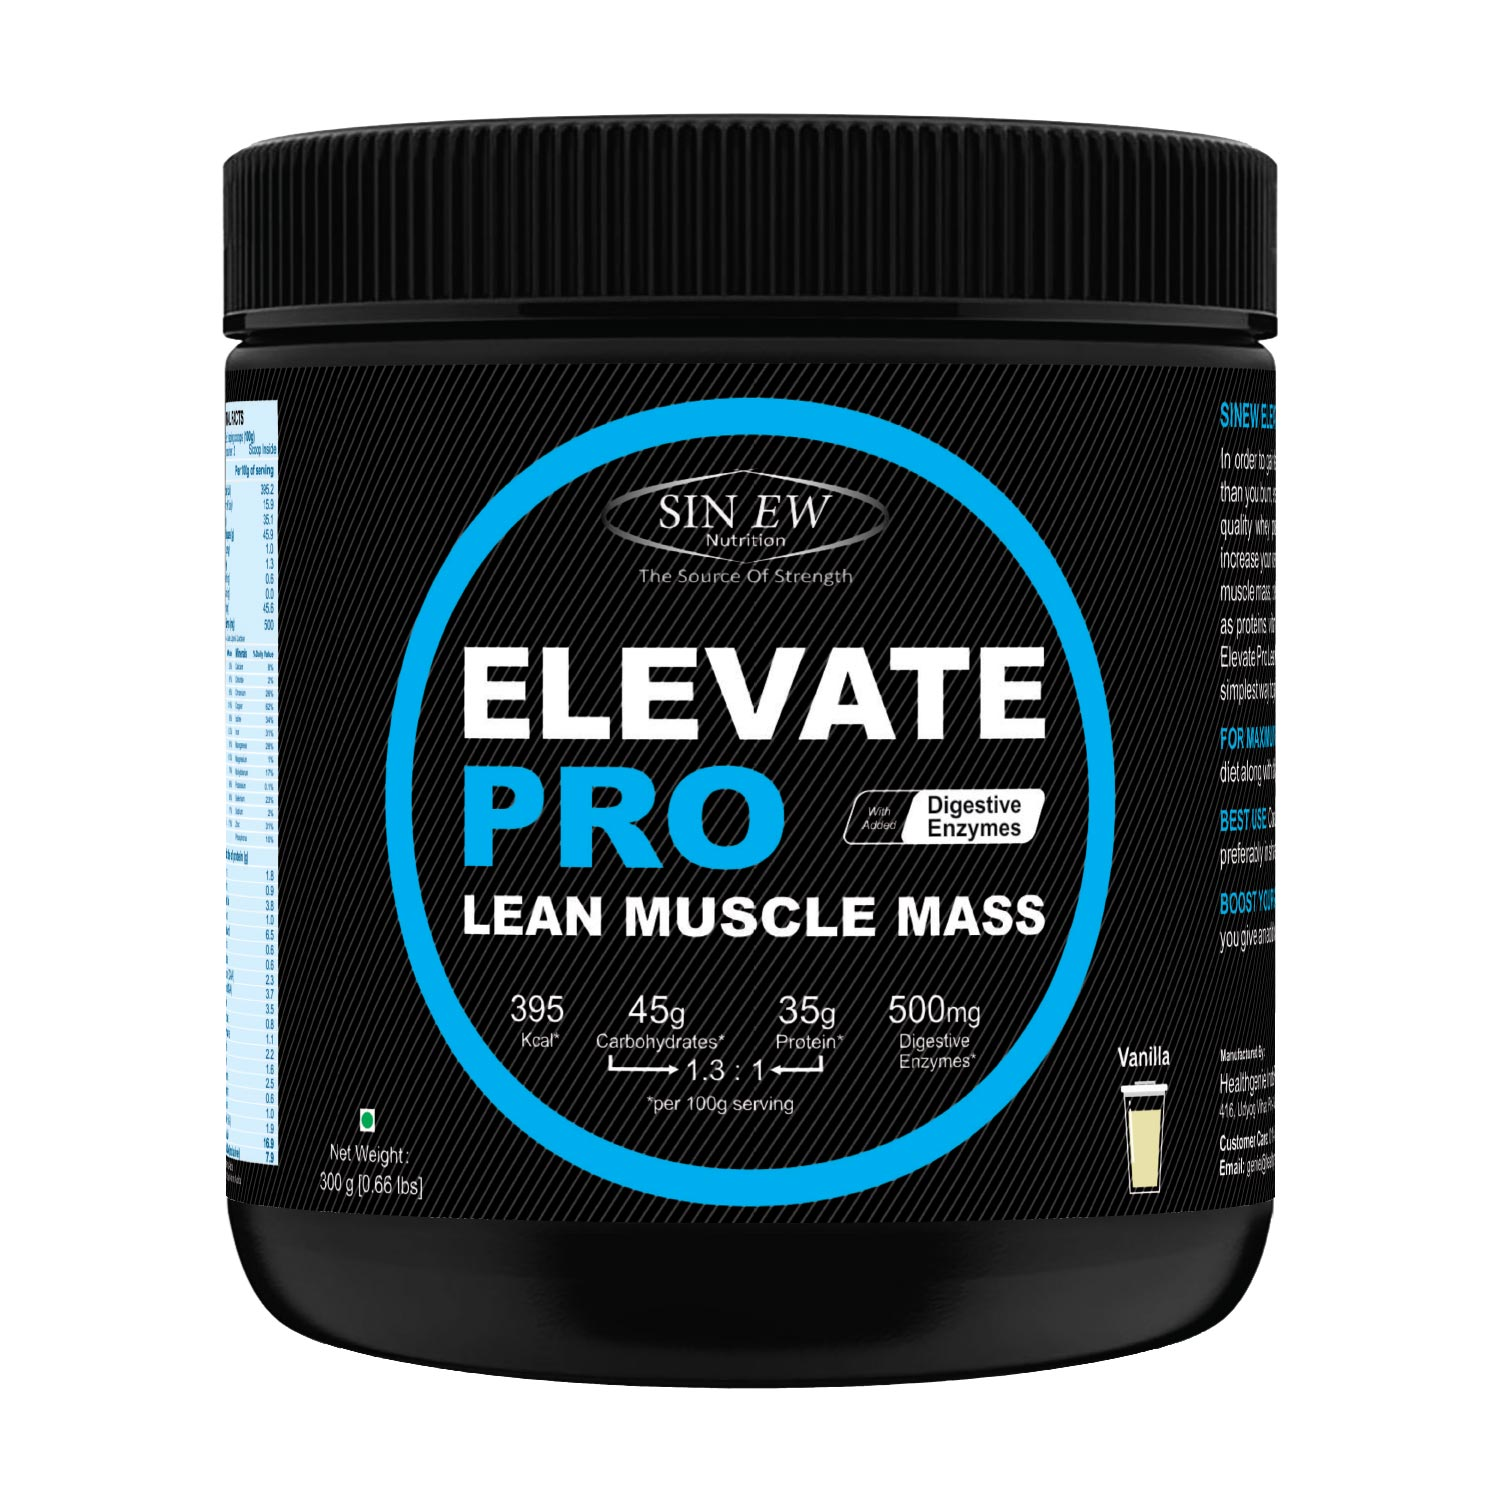 Elevate Pro Lean Muscle Mass (vanilla) 300g F